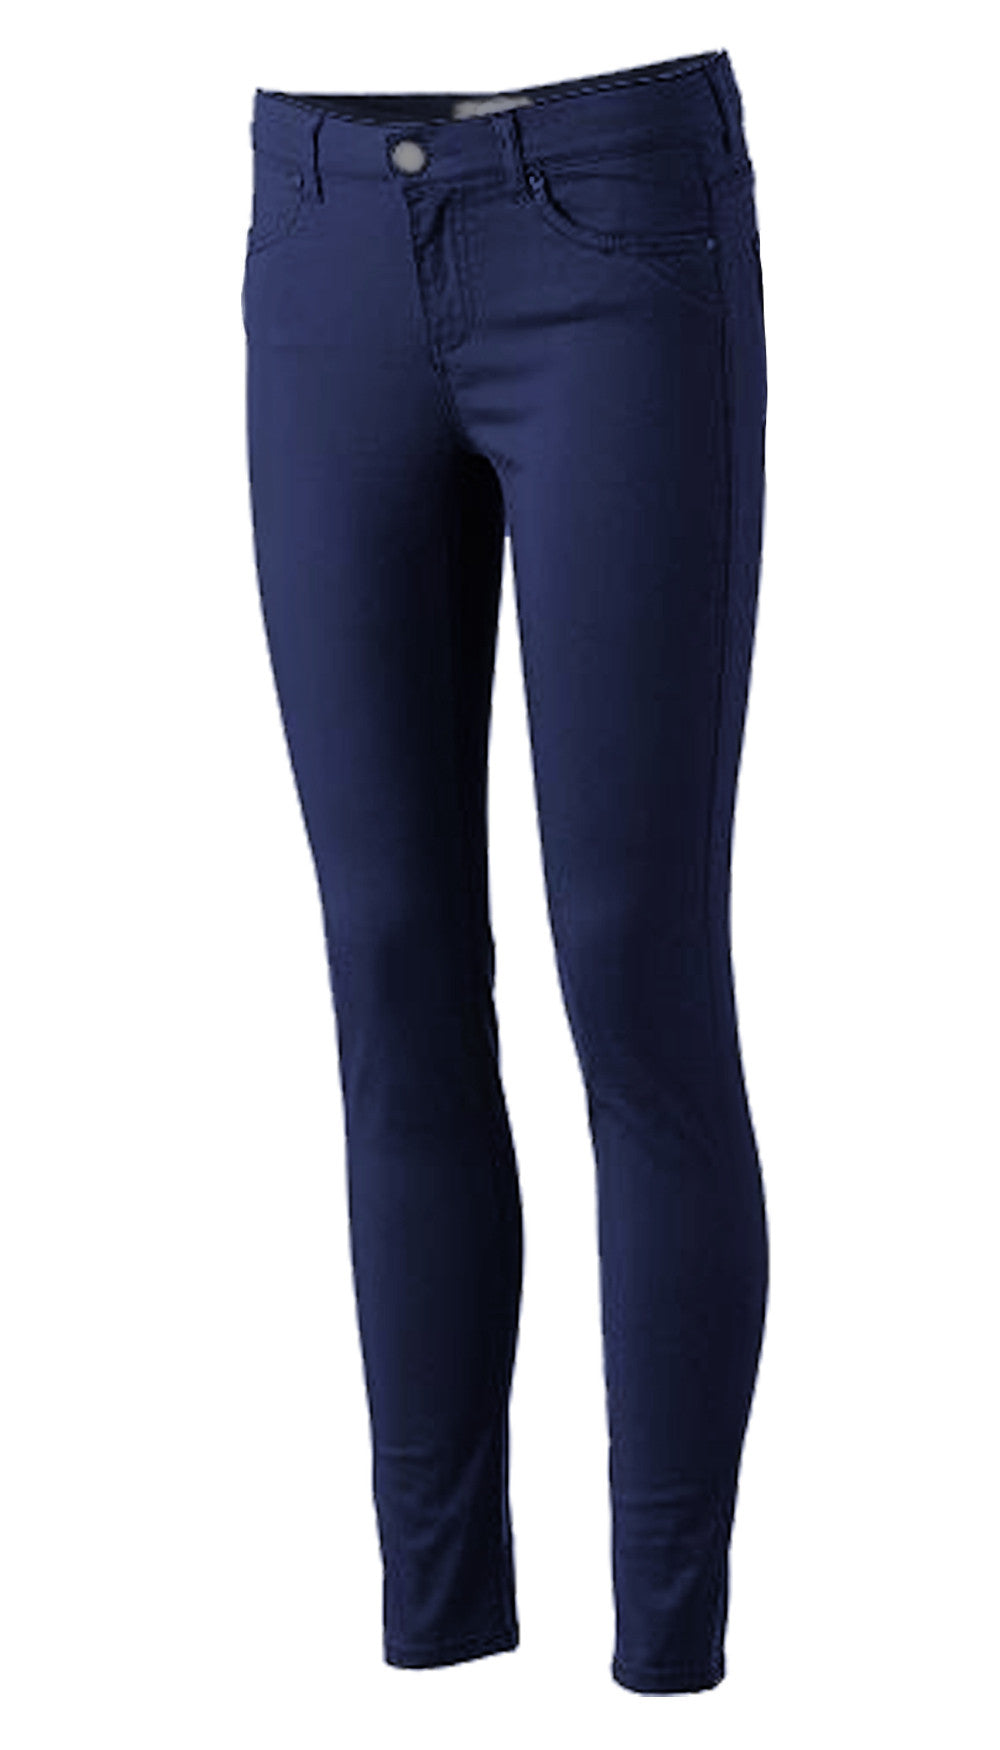 Girls Stretched Skinny Pants School Uniform Navy